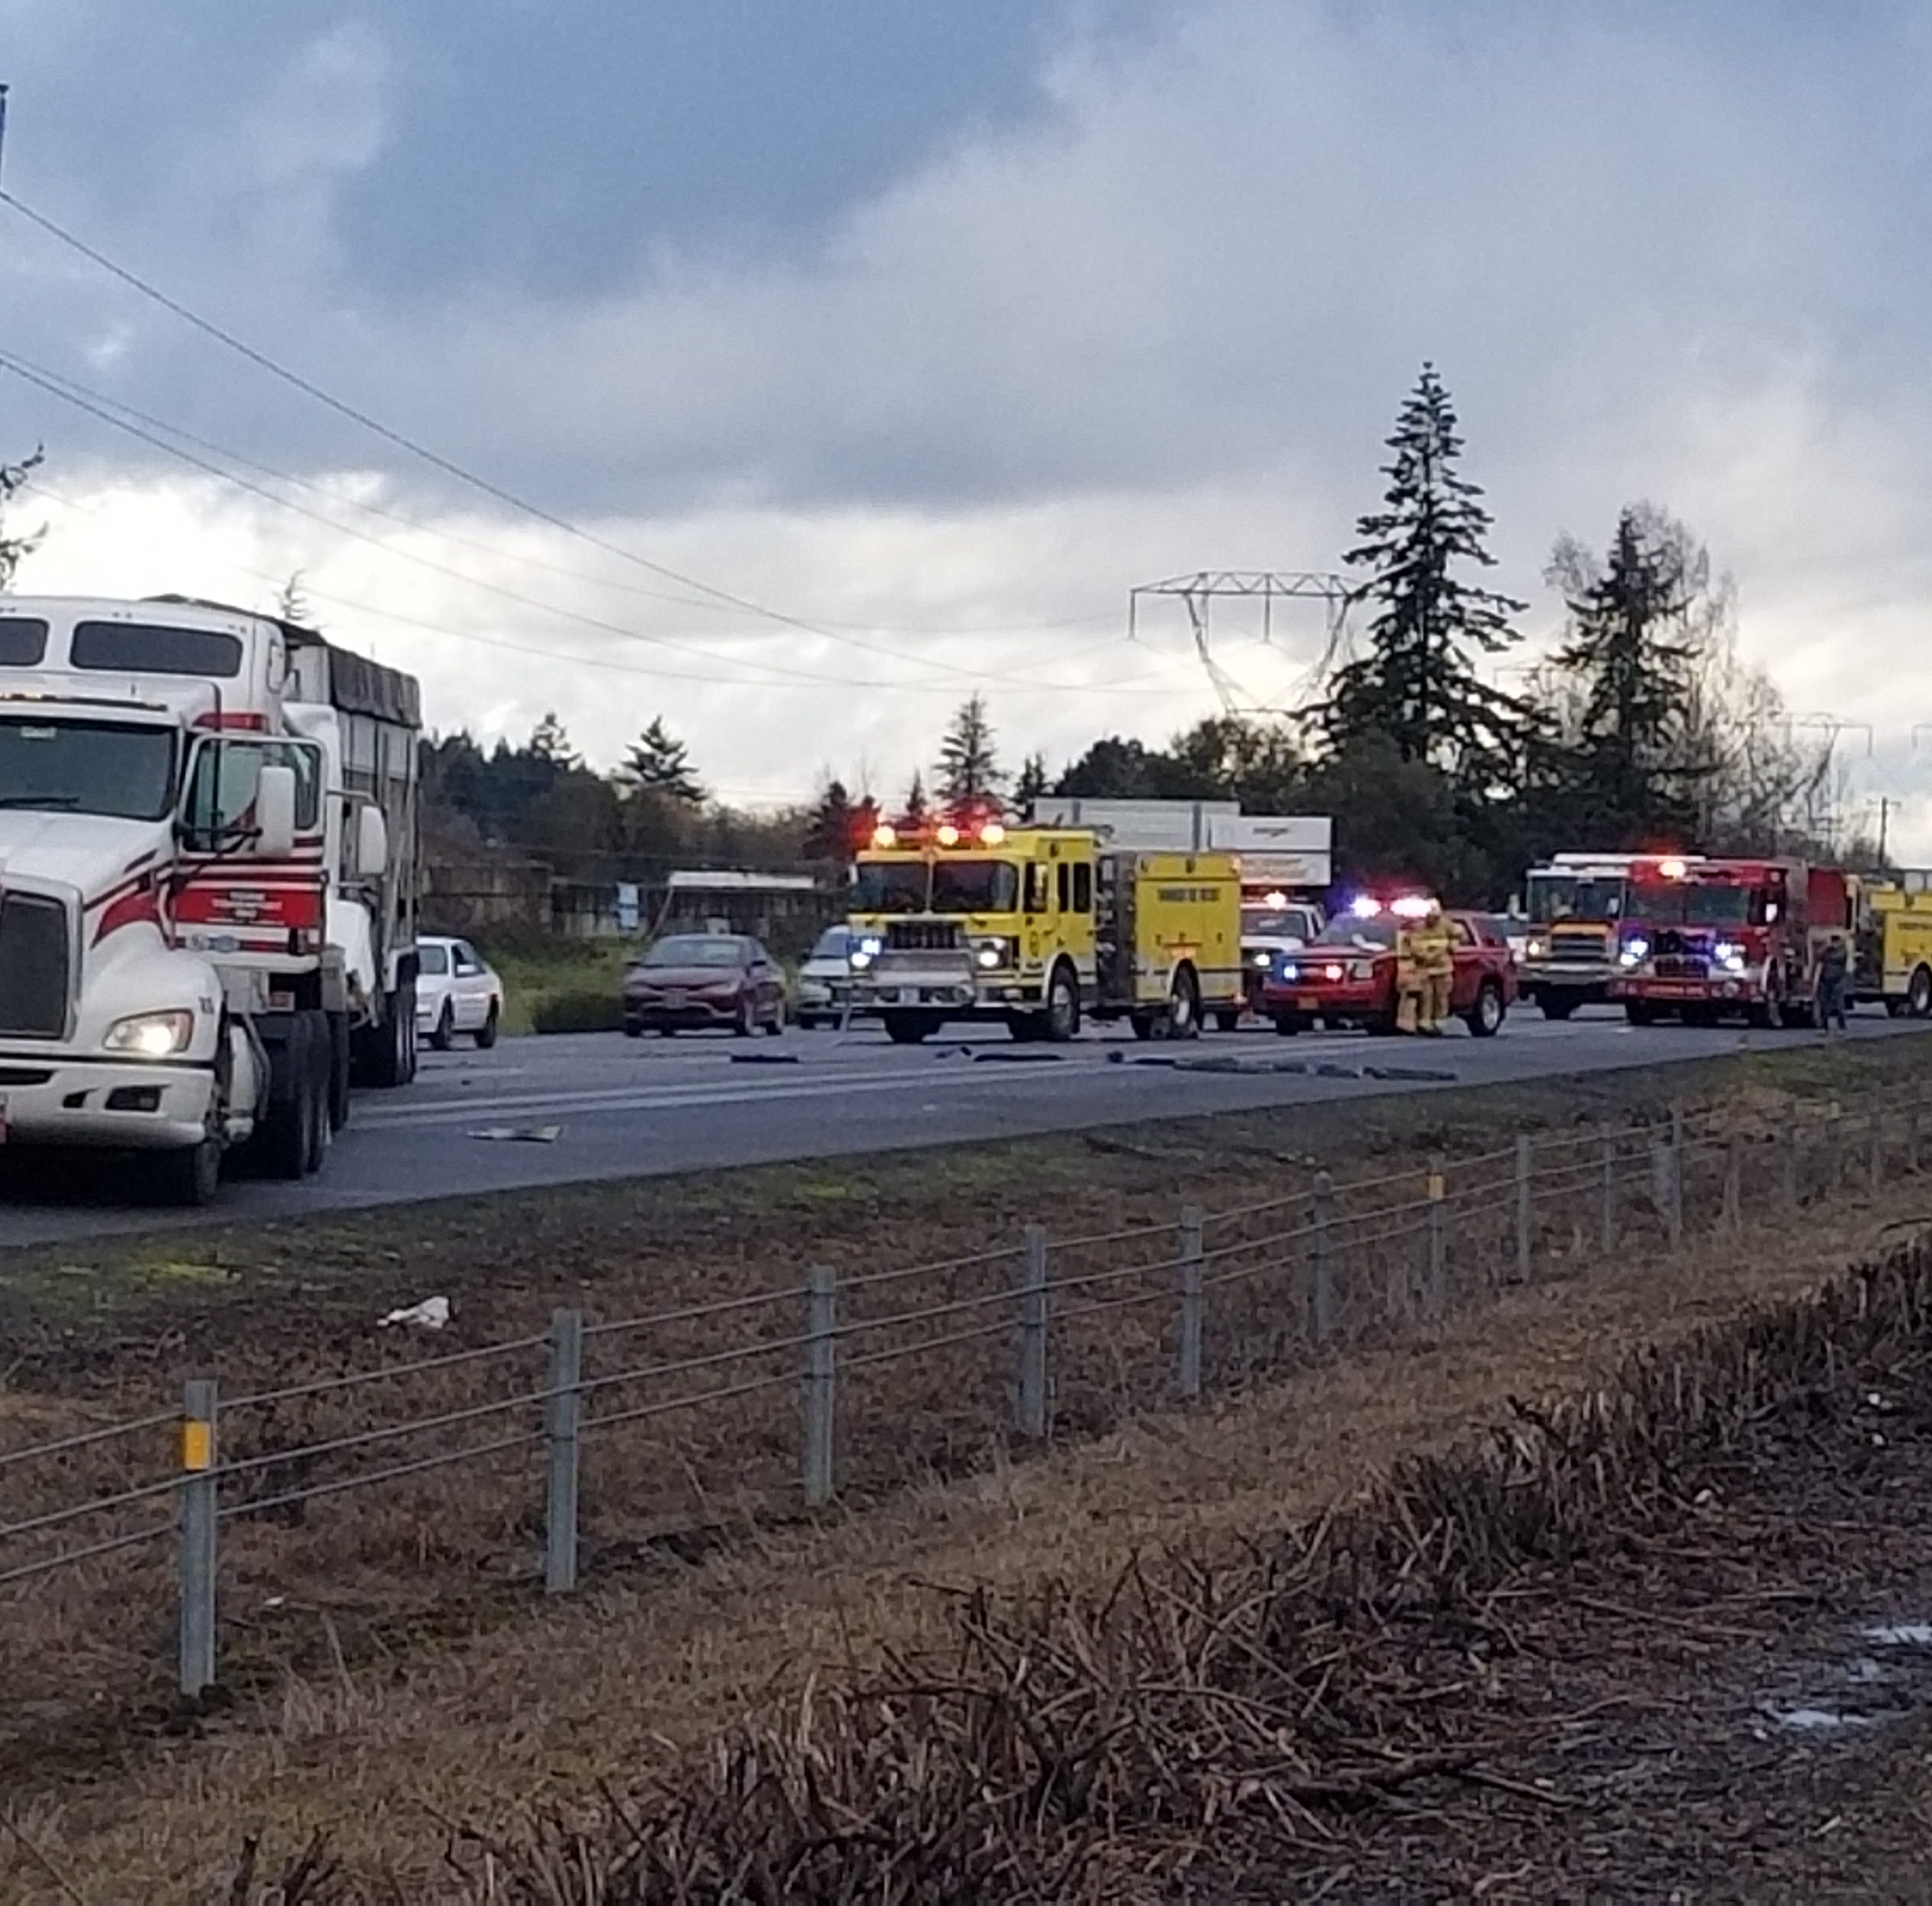 All northbound, two southbound lanes opened after I-5 crash near Woodburn